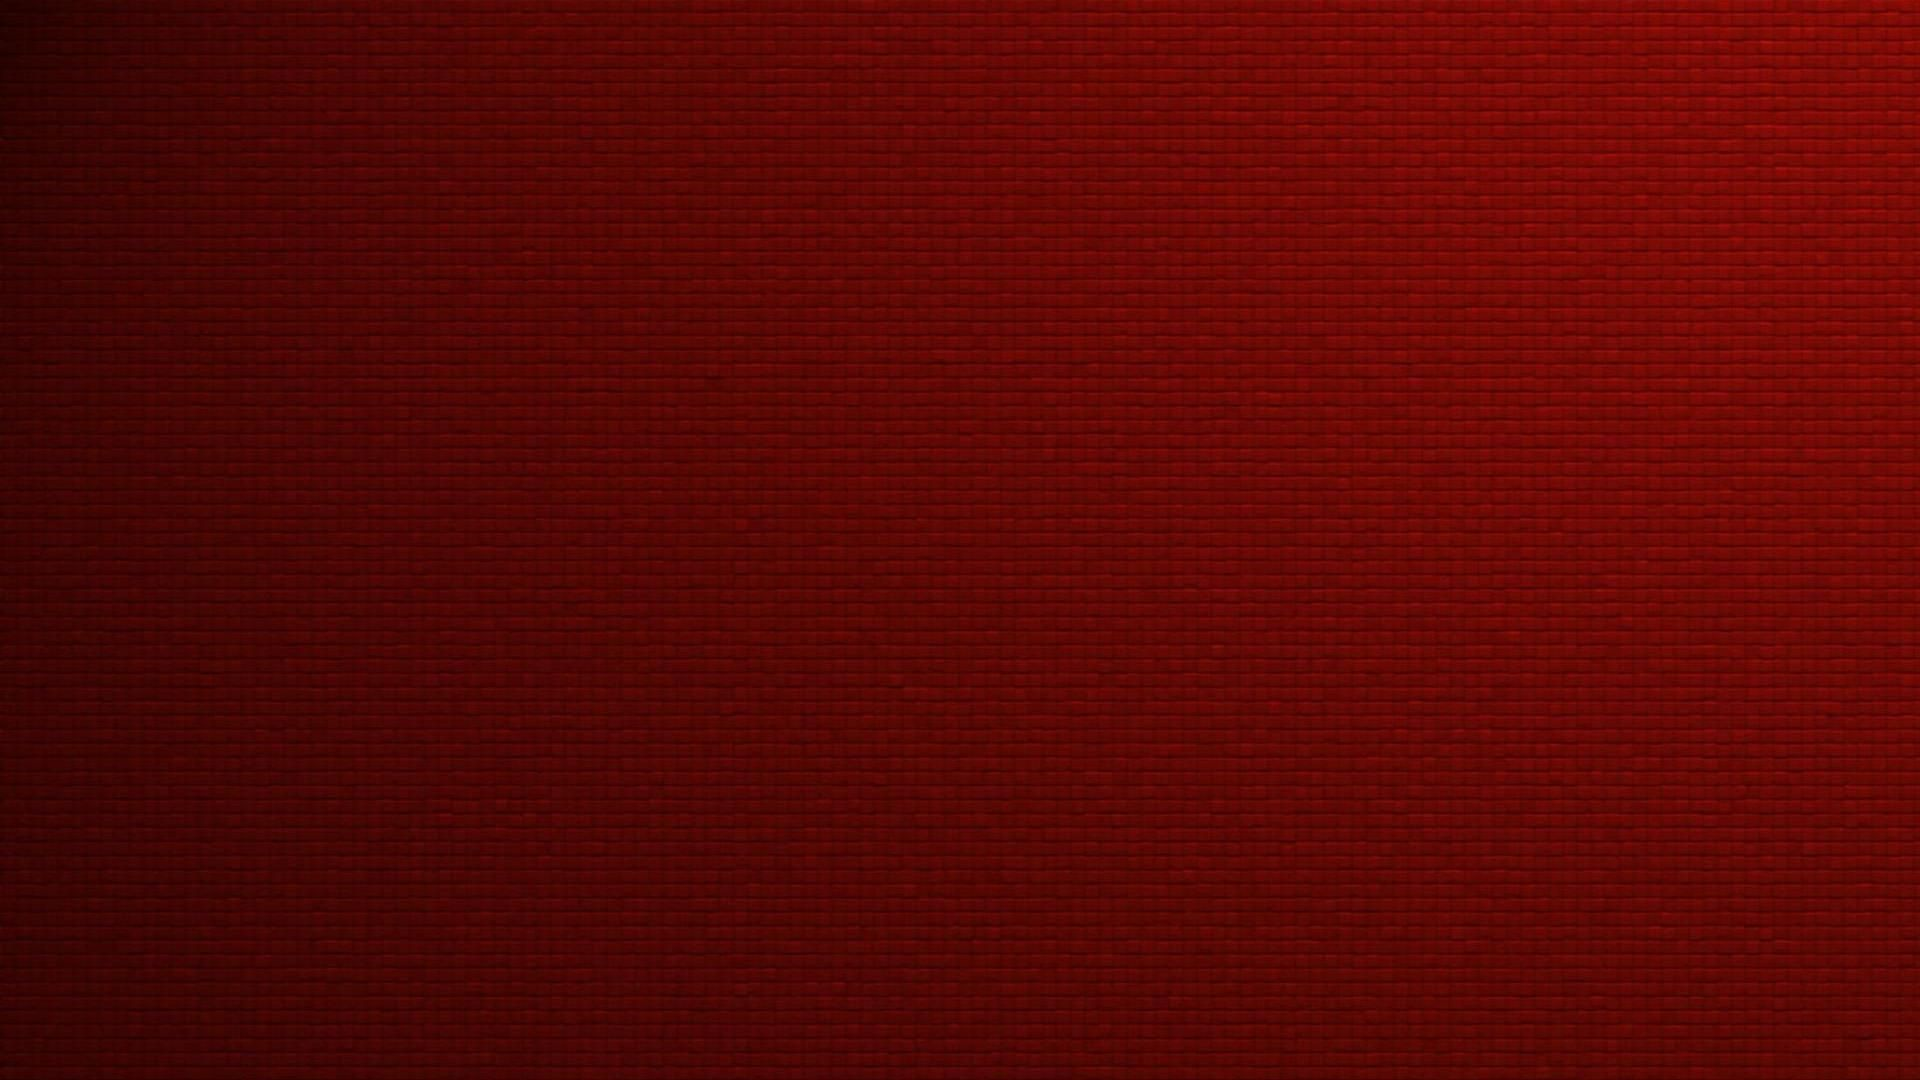 Plain Red Background Wallpapers High Resolution Wallpaper ...